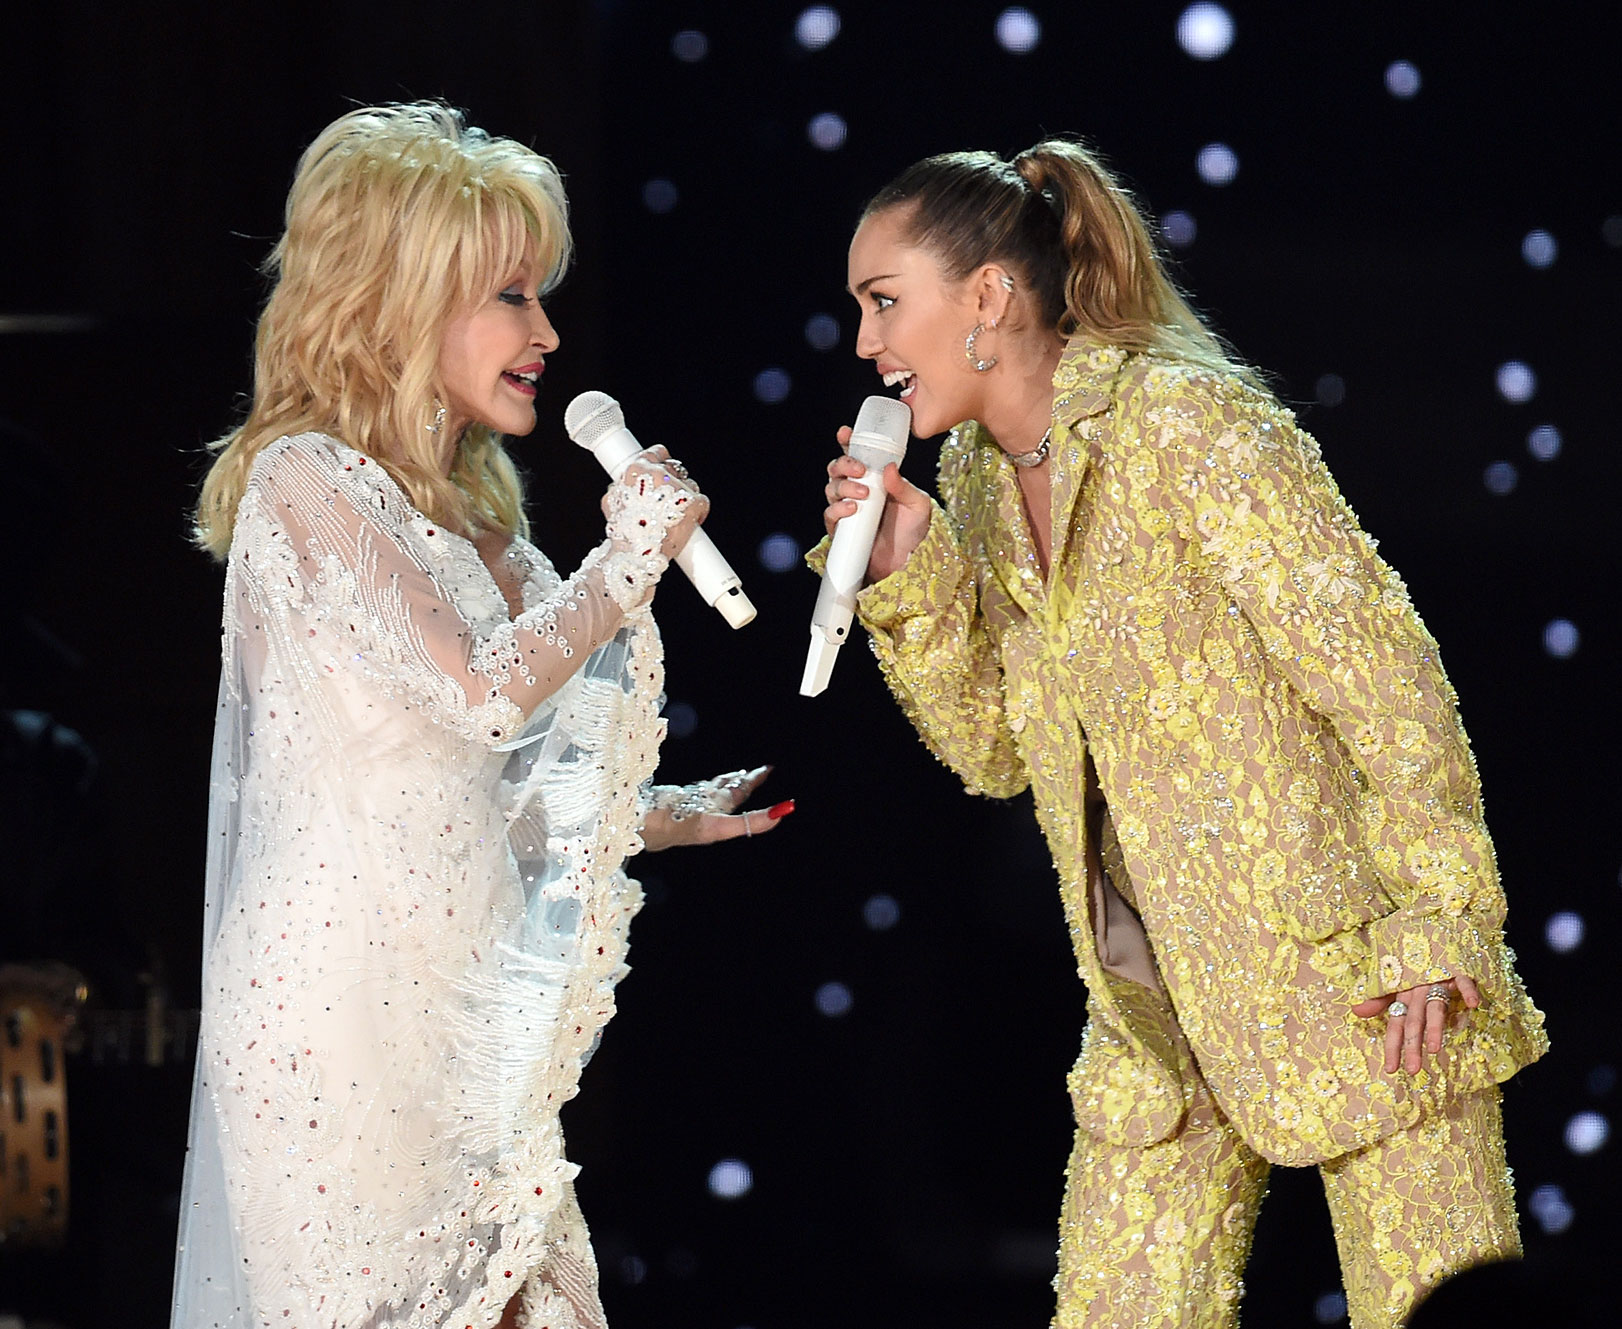 bbf7104757ff Miley Cyrus, Katy Perry and More Pay Incredible Tribute to Dolly Parton at  the Grammy Awards 2019